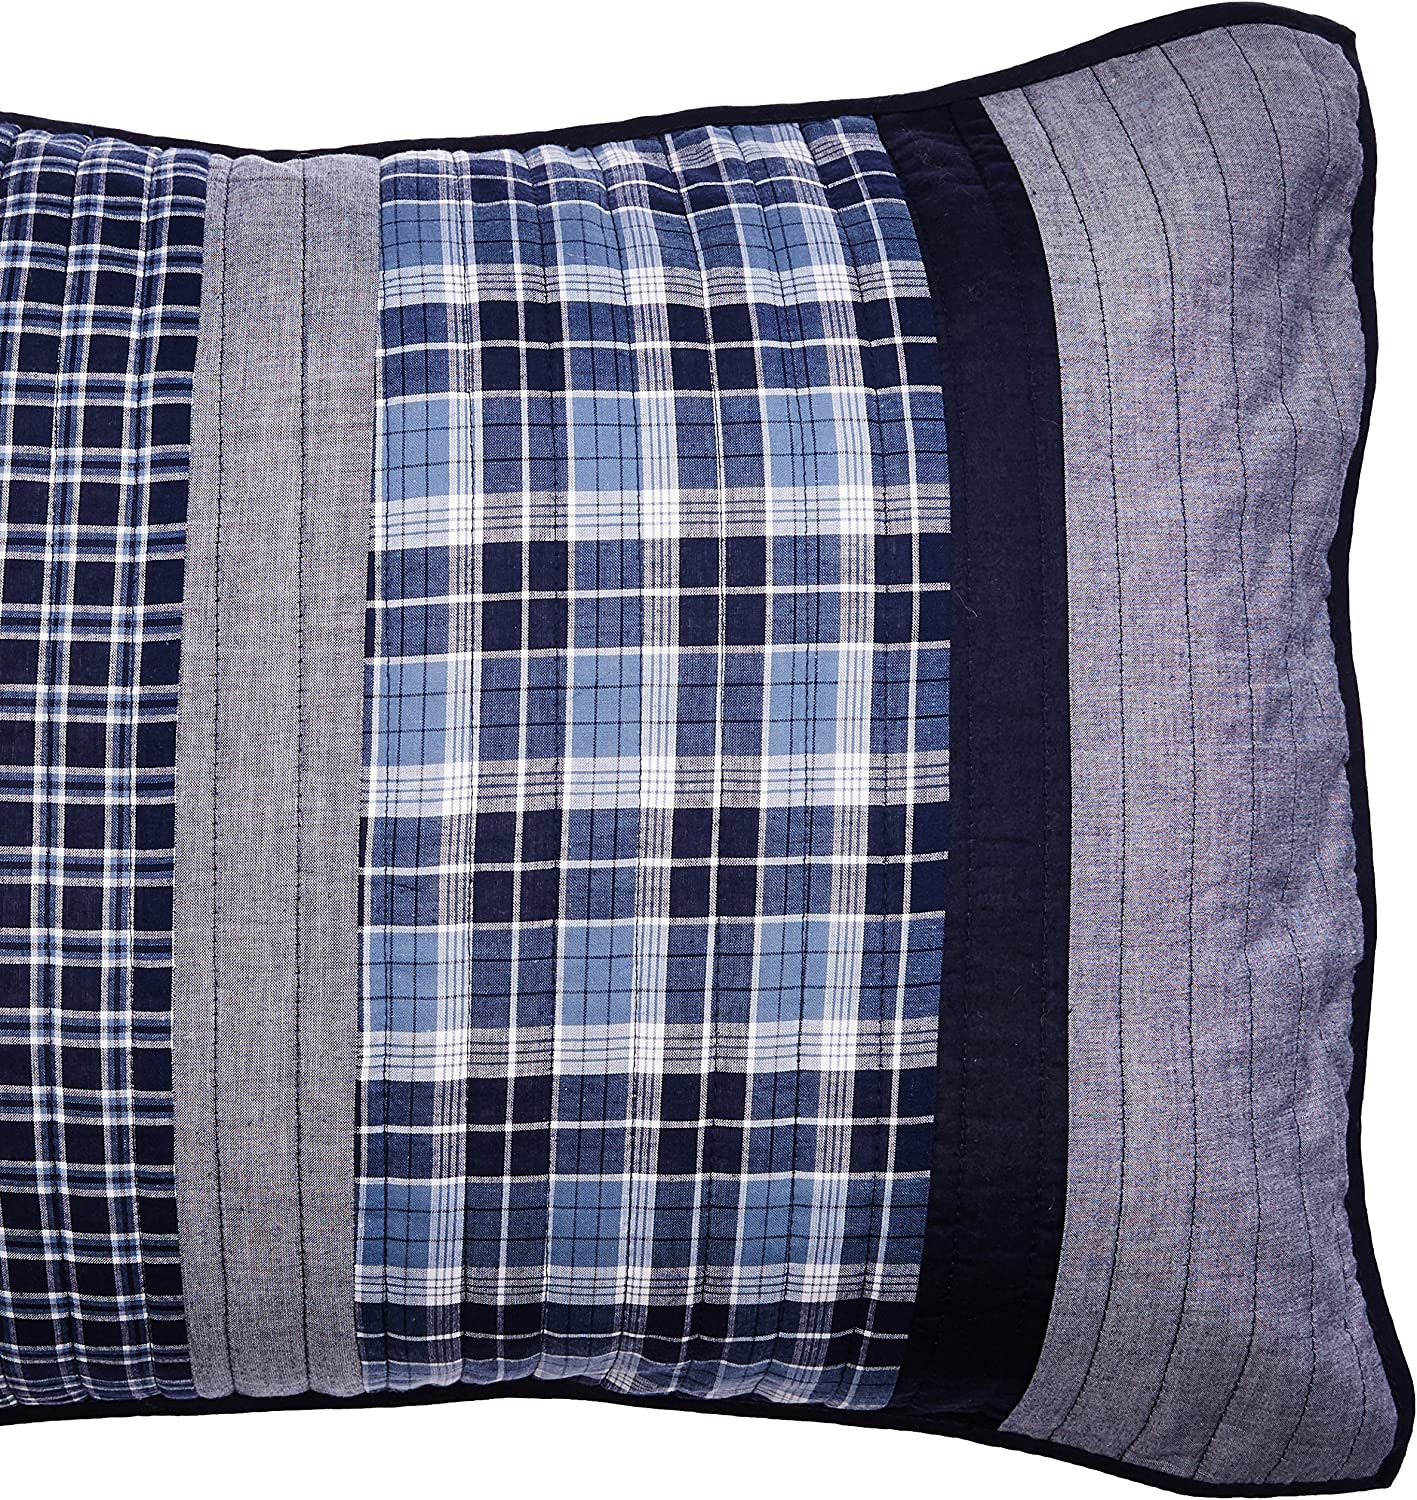 Nautica | Adleson Collection | 100% Cotton Quilted Accent Standard Sham, Envelope Closure, Pre-Washed for Added Softness, Easy Care Machine Washable, Blue/Grey